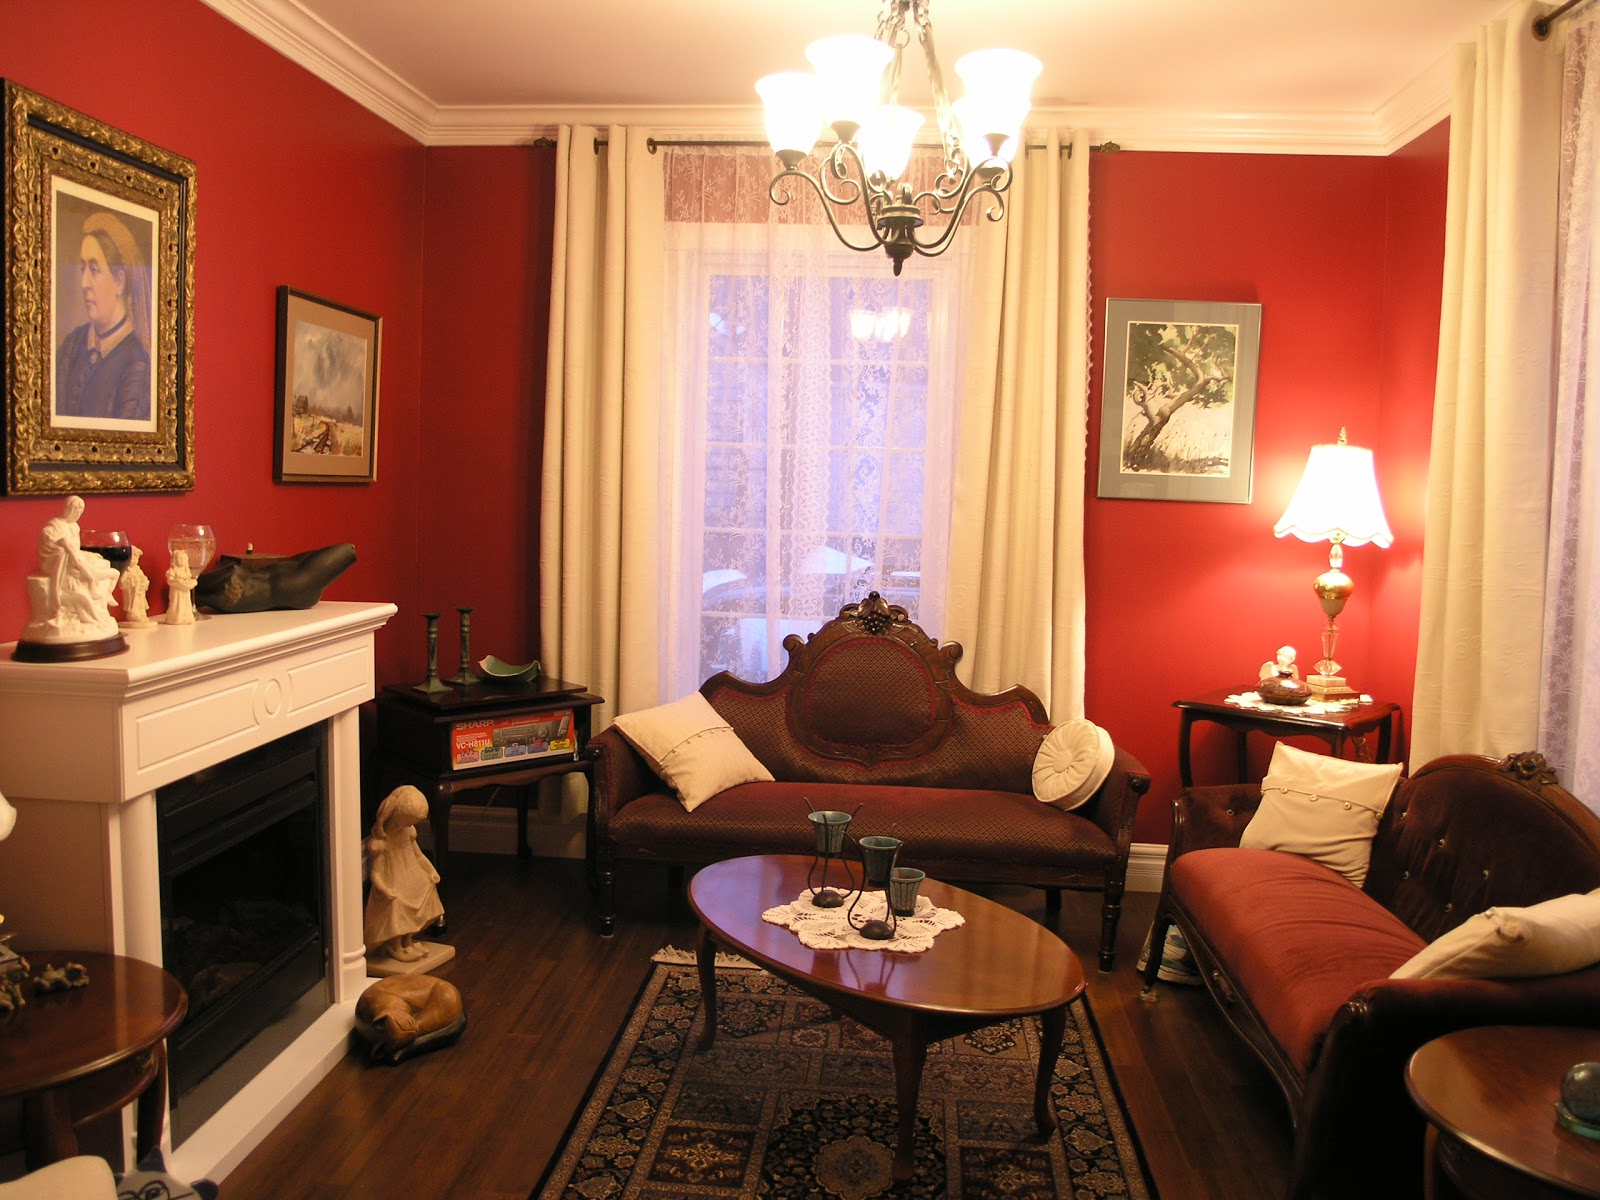 Home for sale liverpool nova scotia - Victorian living room set for sale ...